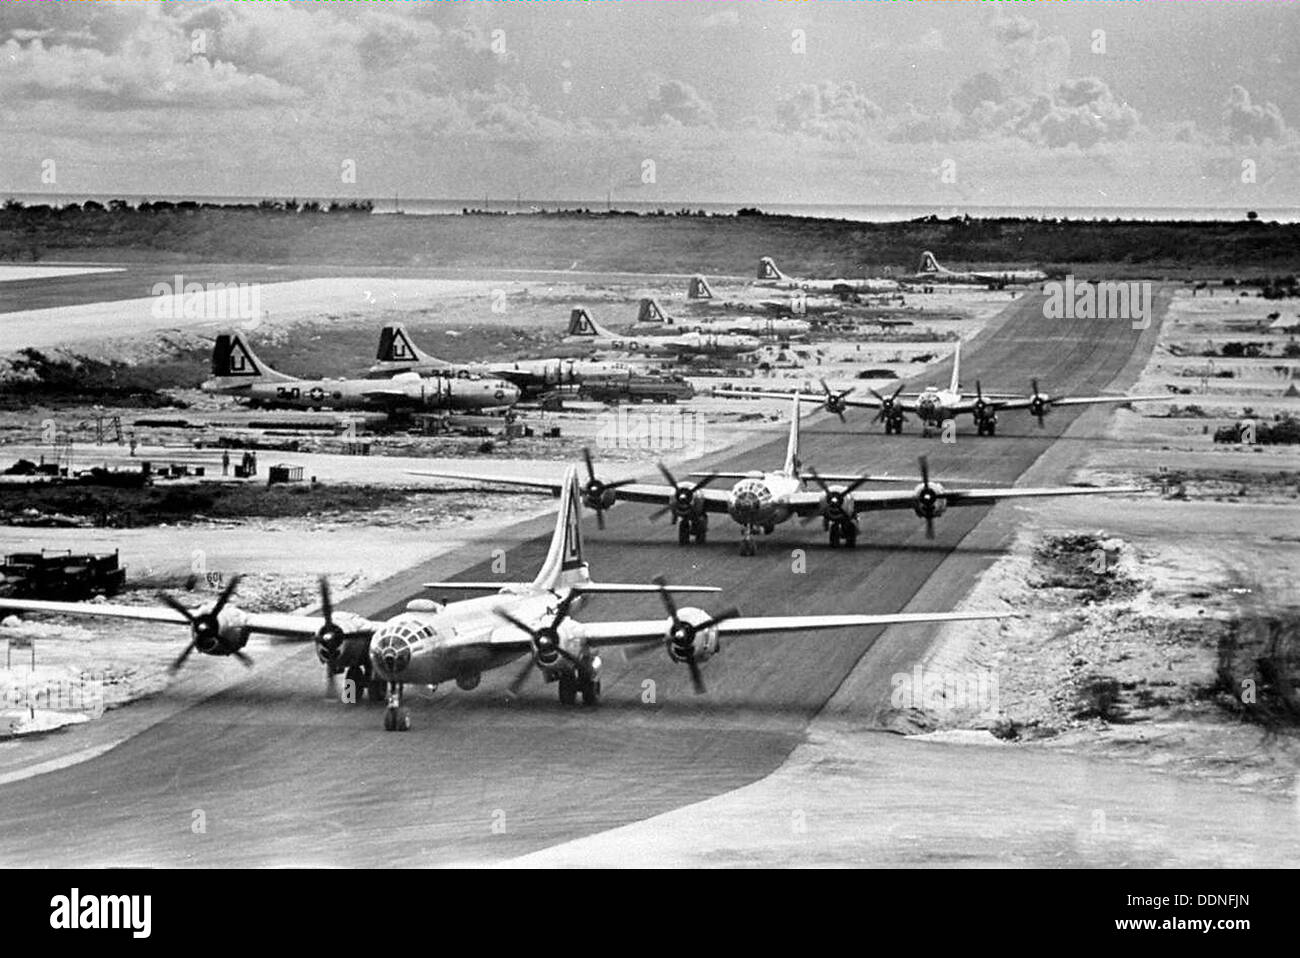 29th Bombardment Group B-29s at North Field, Tinian, 1945 - Stock Image